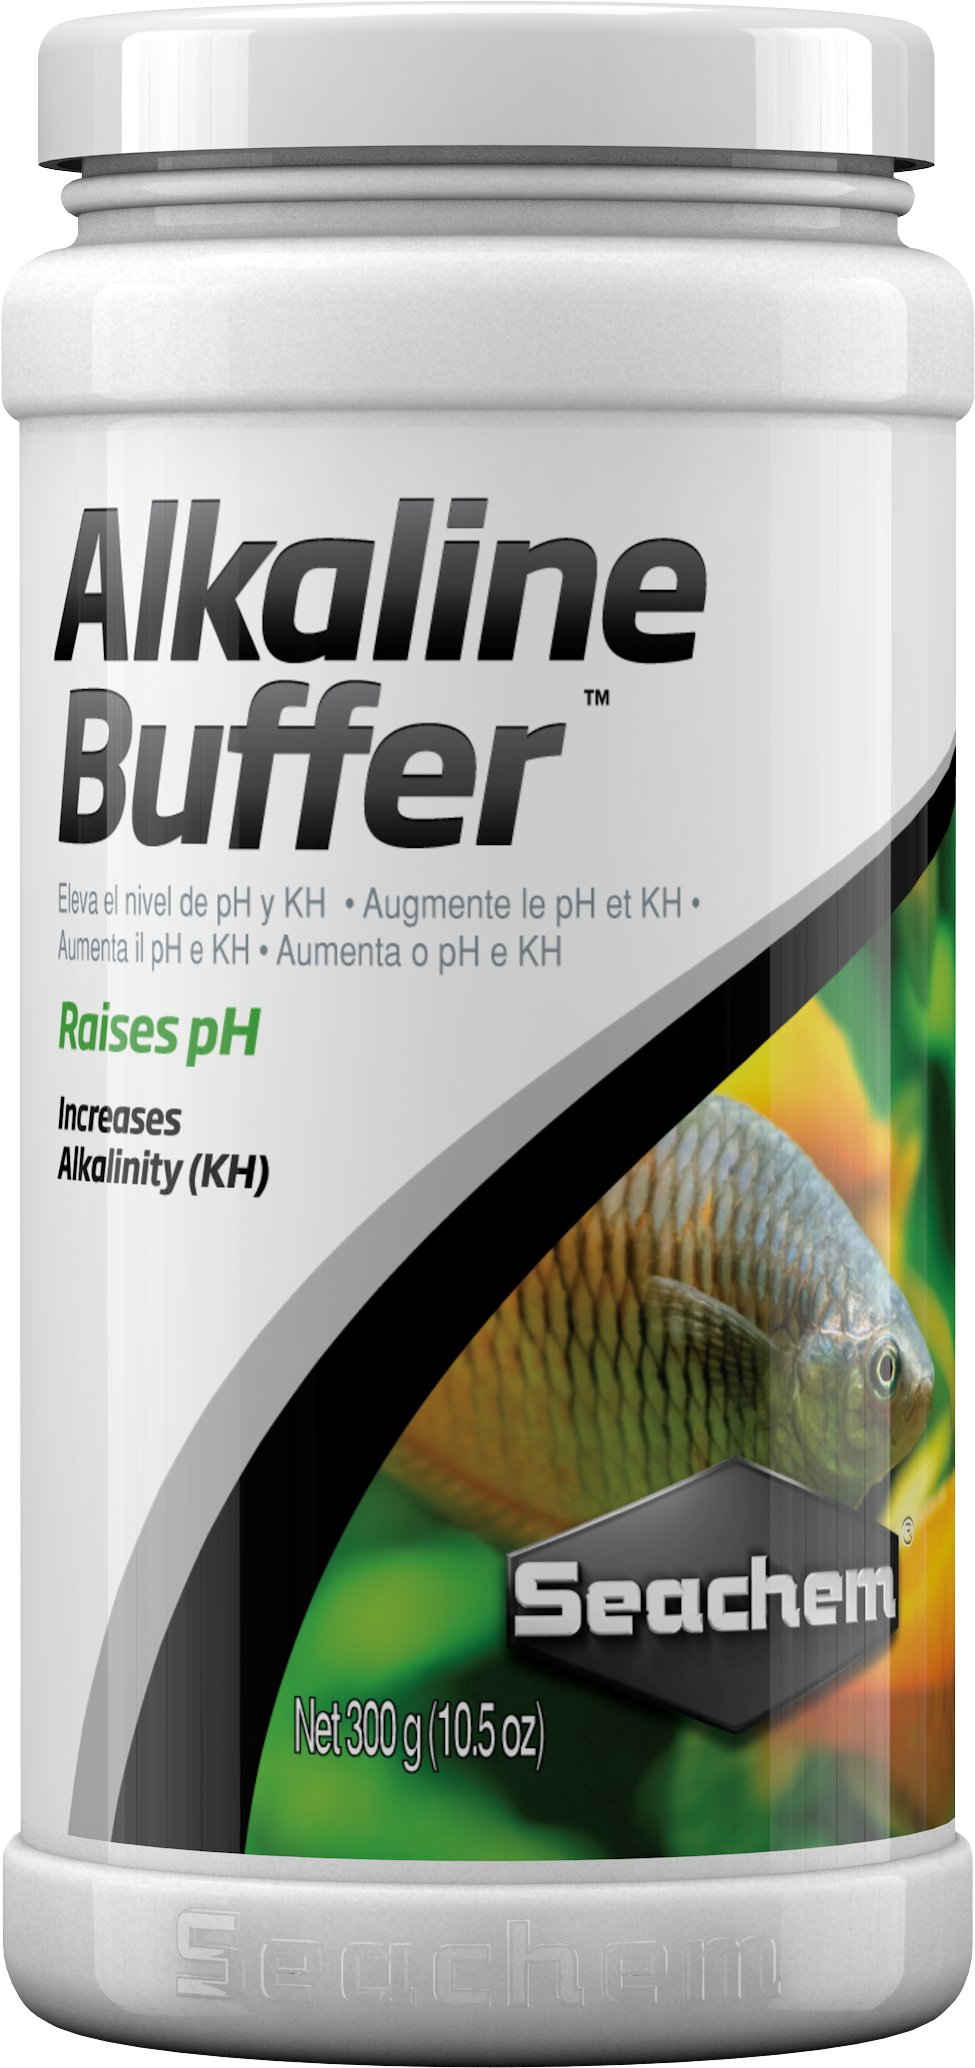 SEACHEM Alkaline Buffer 300 gr. solution tampon pour augmenter et stabilser le pH entre 7.4 et 8.4